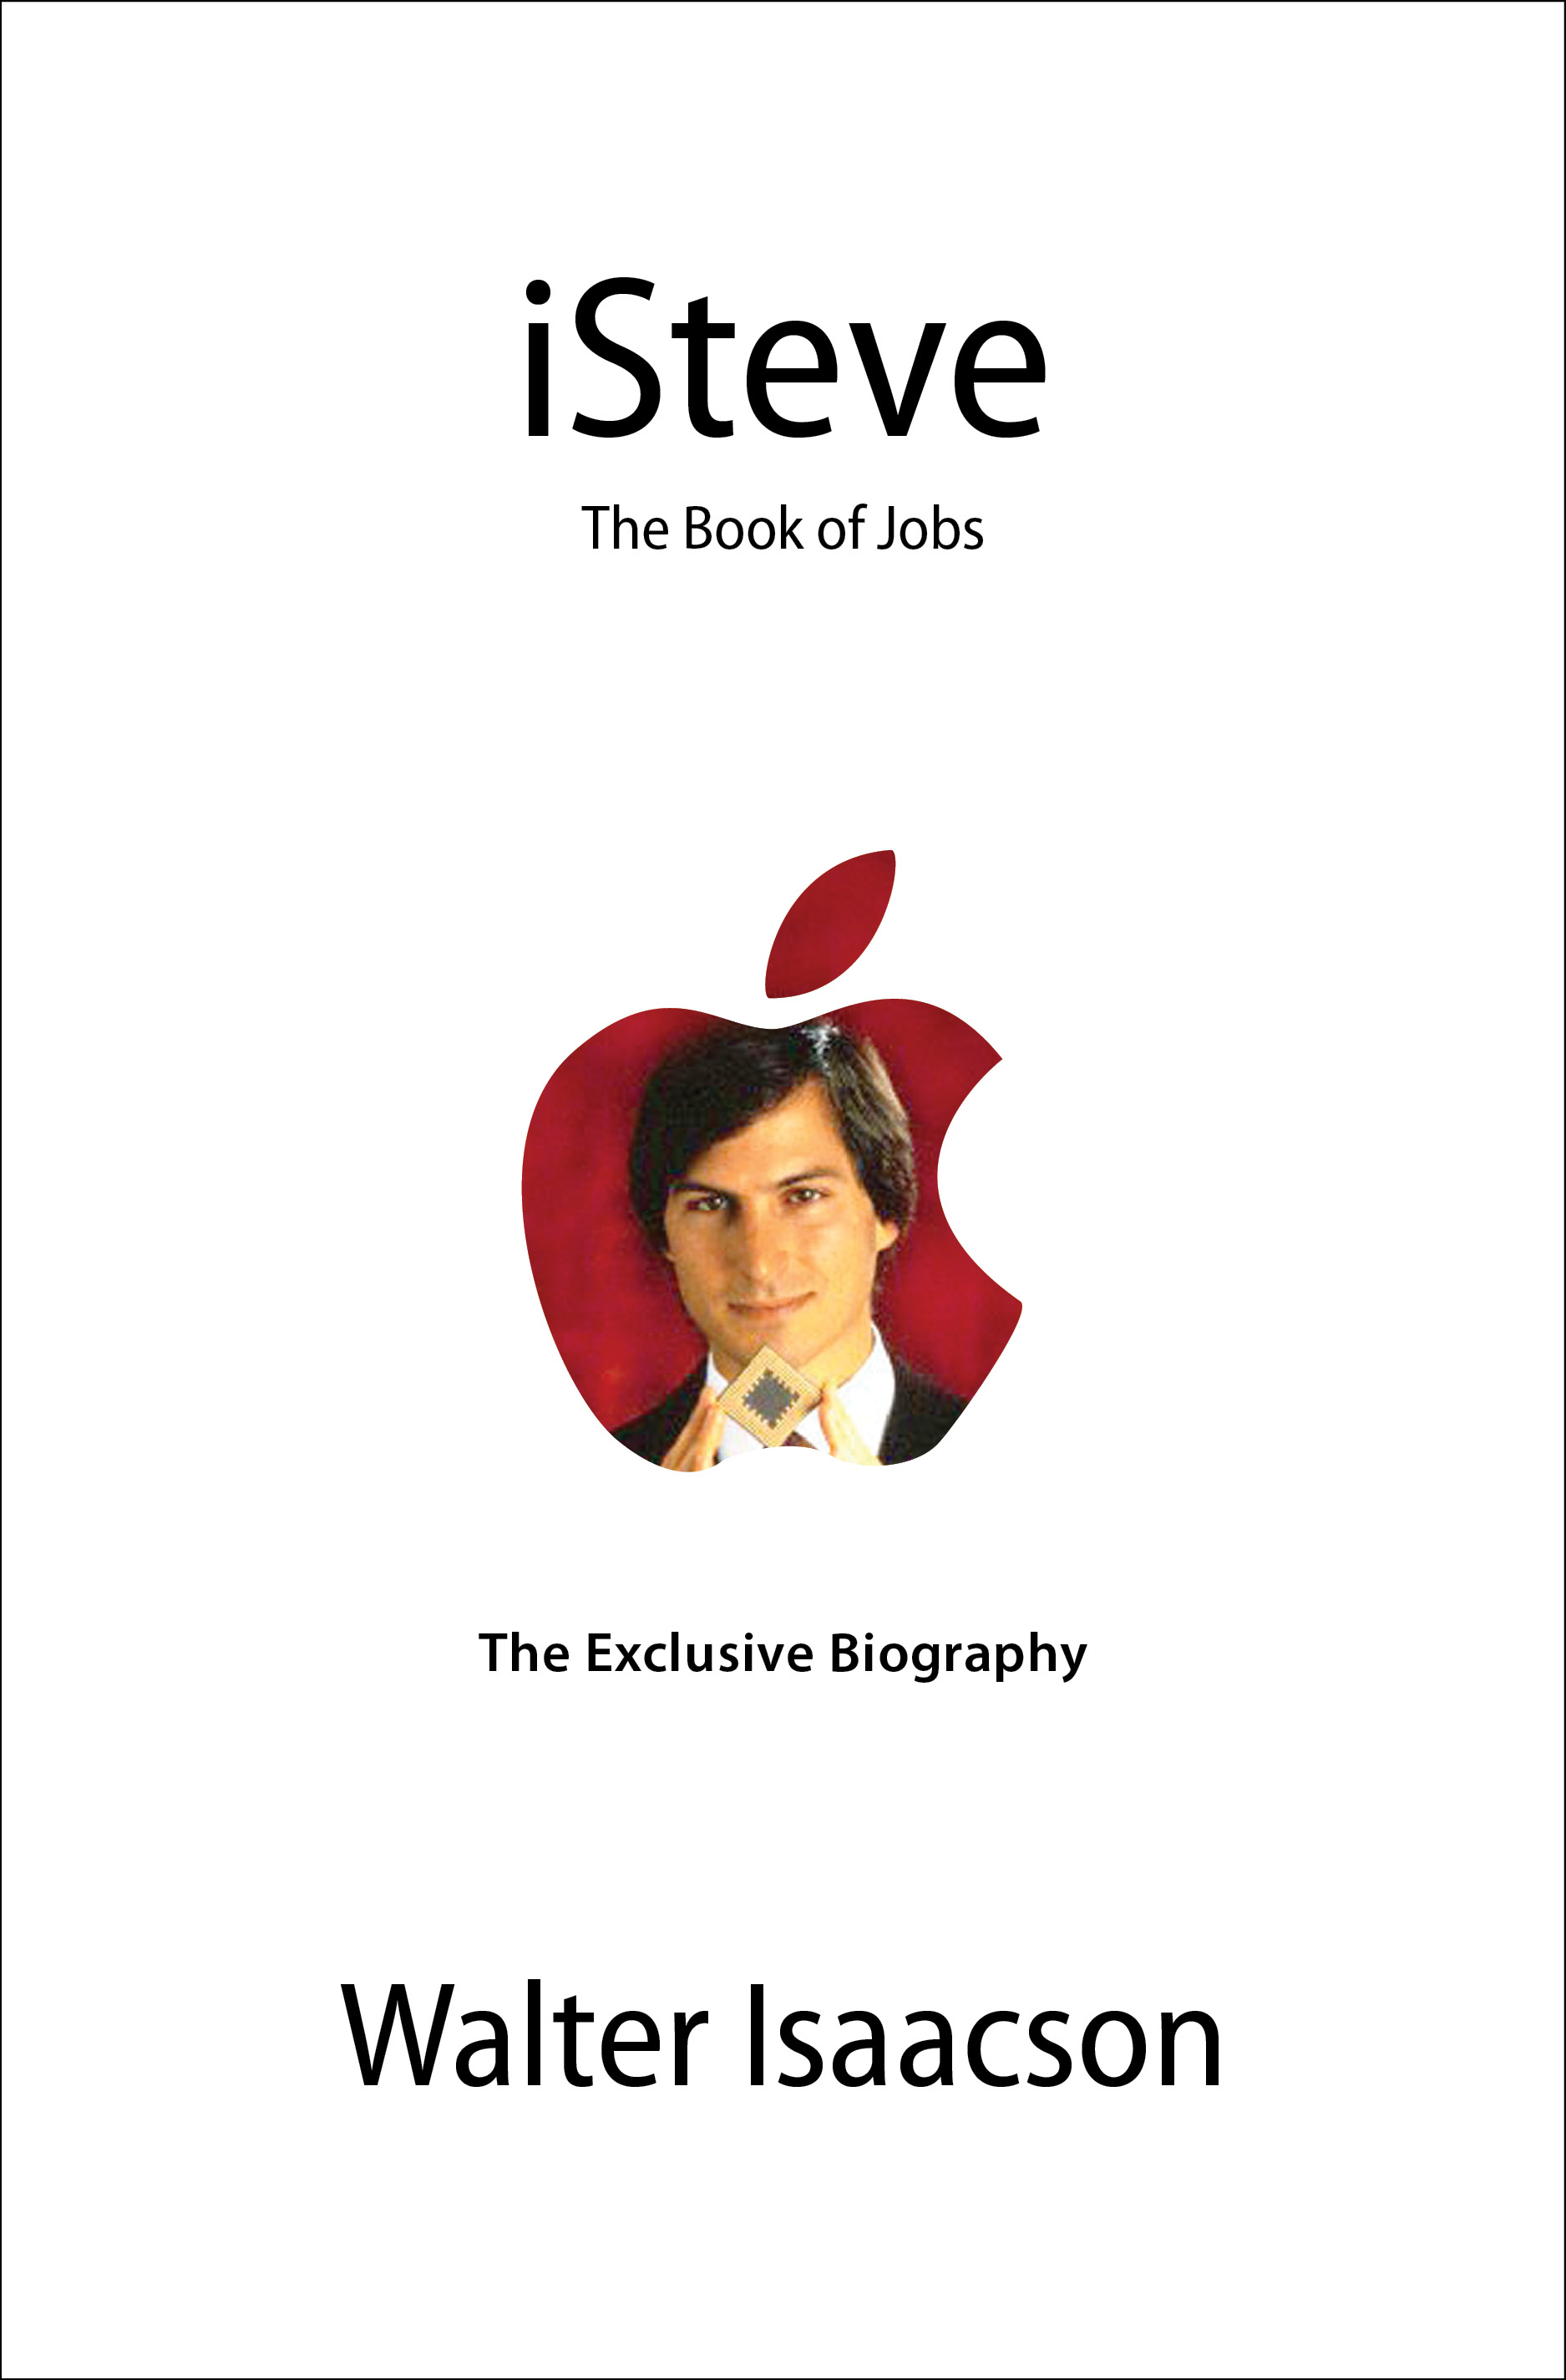 iSteve The Book of Jobs